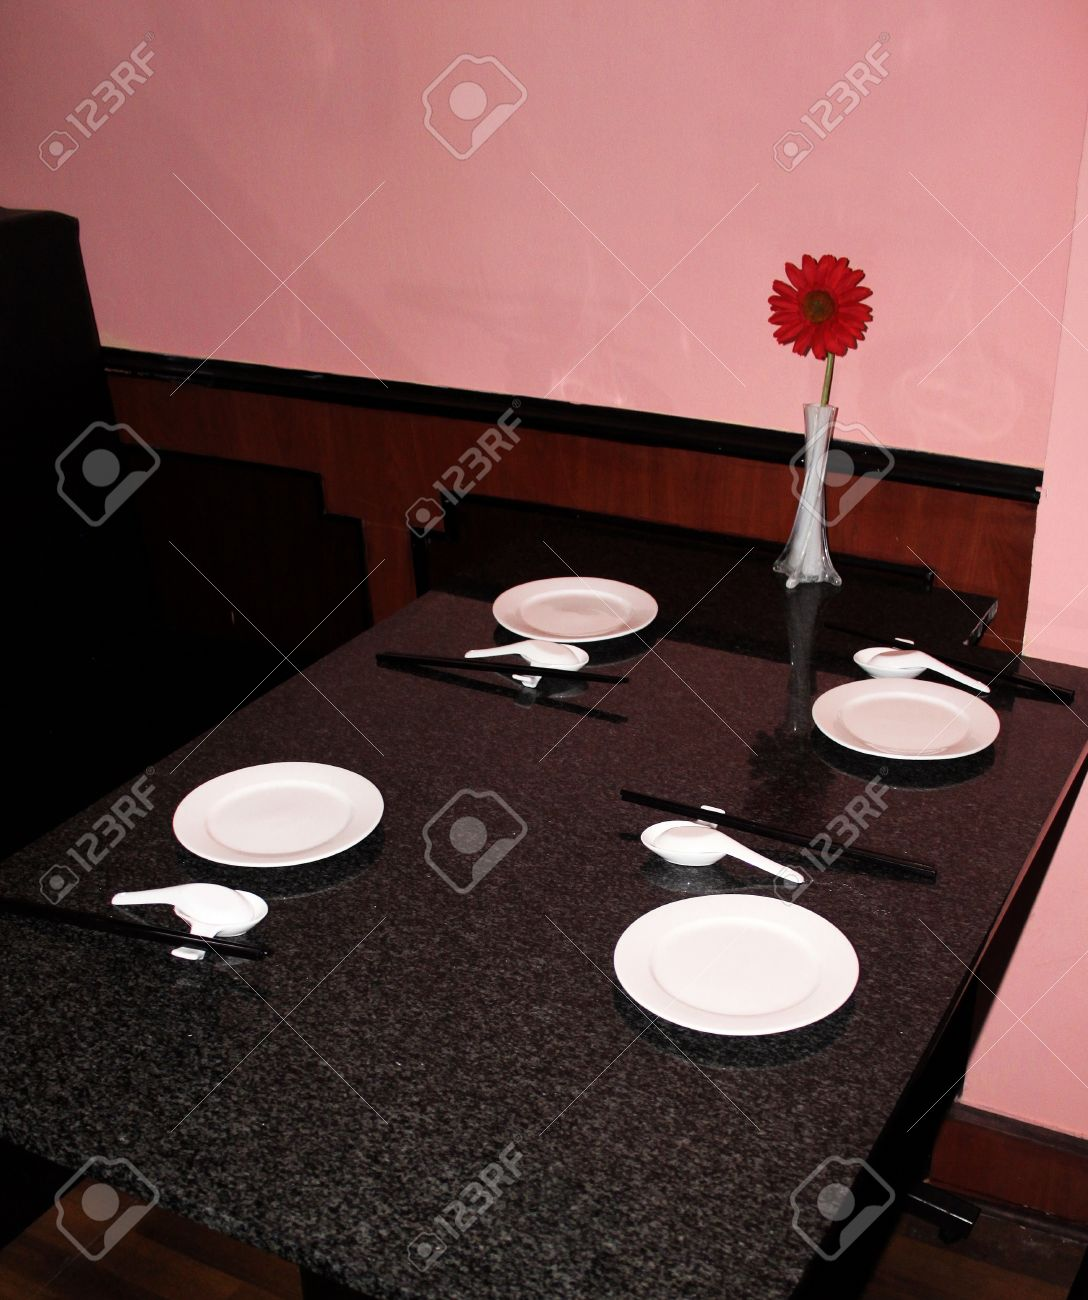 Simple Table Setting at a Chinese Restaurant on Marble Table Top Stock Photo - 14017658 & Simple Table Setting At A Chinese Restaurant On Marble Table.. Stock ...